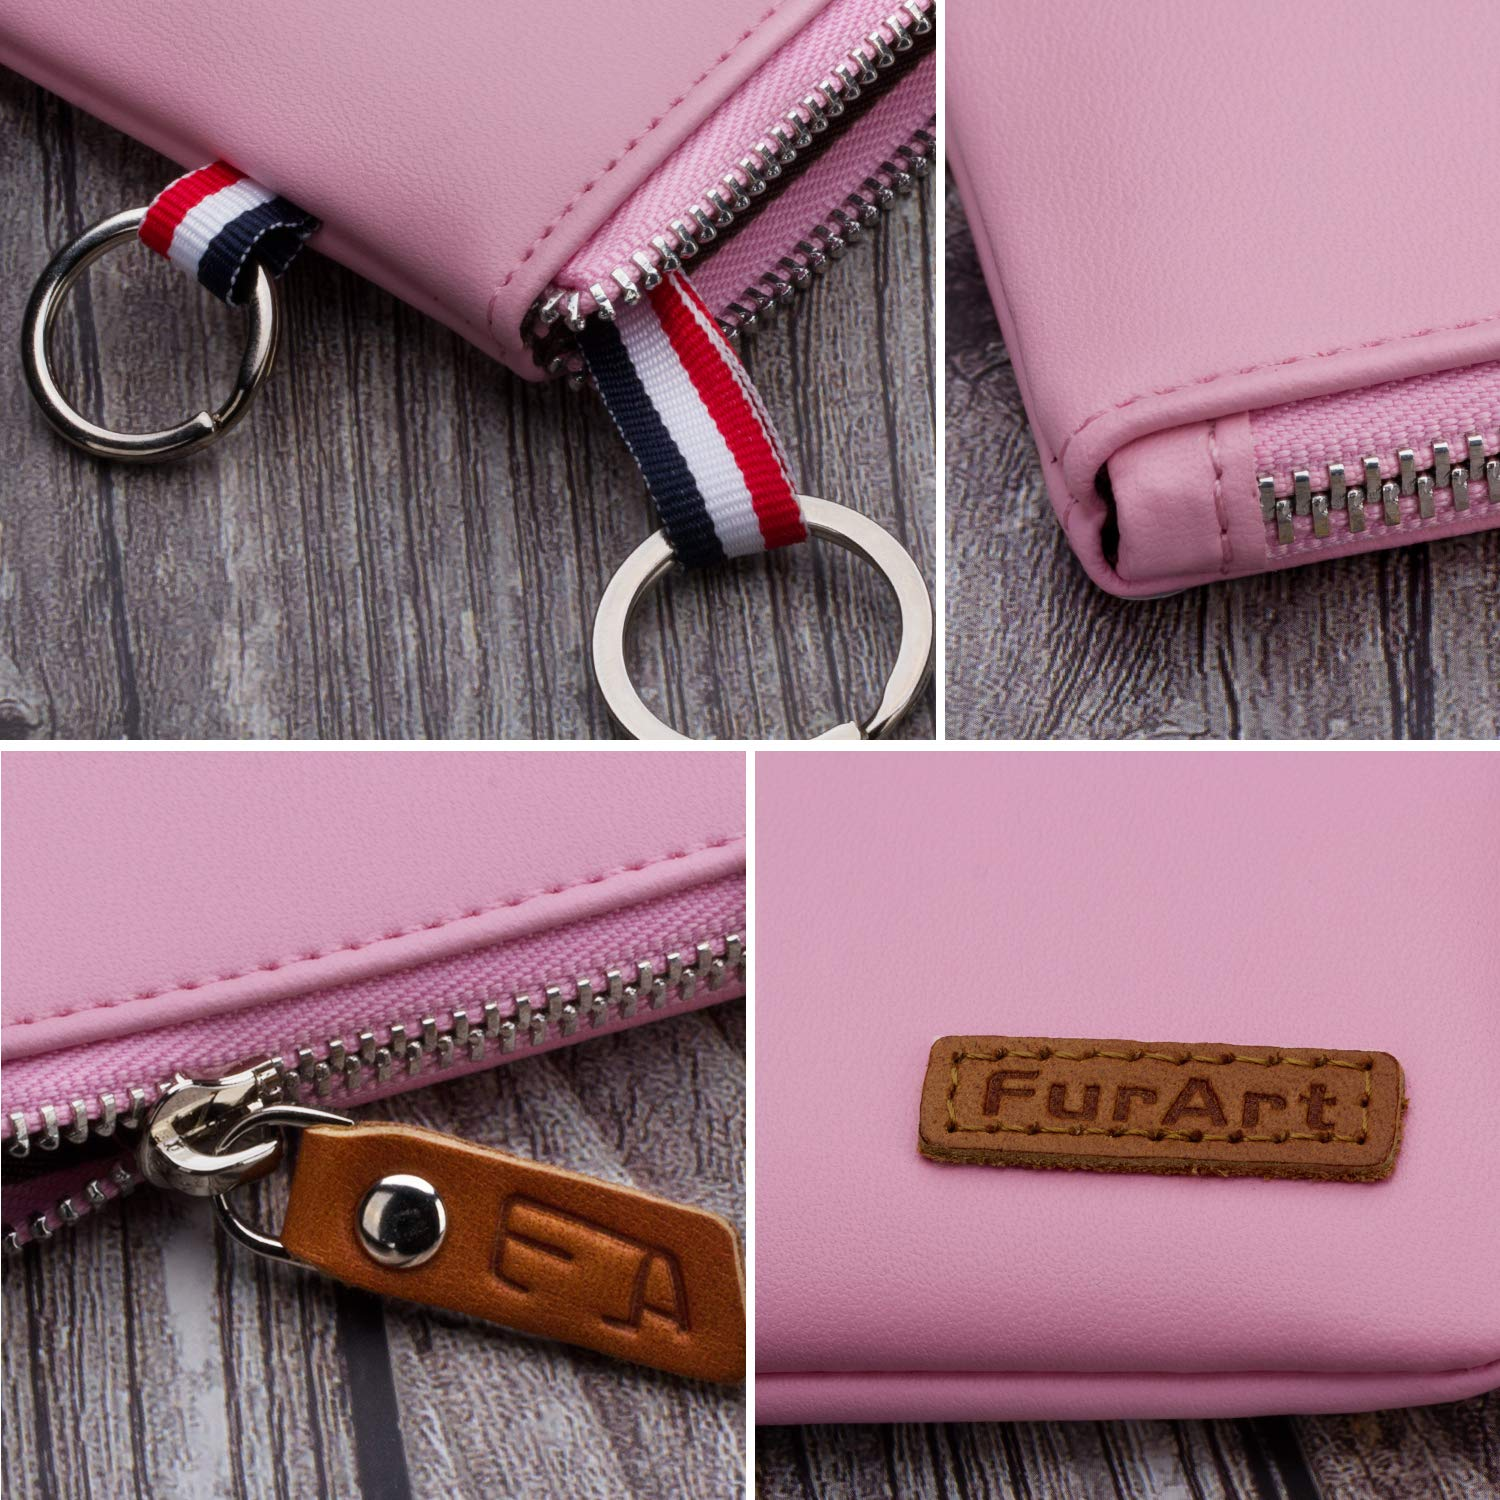 Soft Coin Pouch Mini Size Dual Rings Change Purse with Zipper Inner Pocket FurArt Genuine Leather Coin Purse